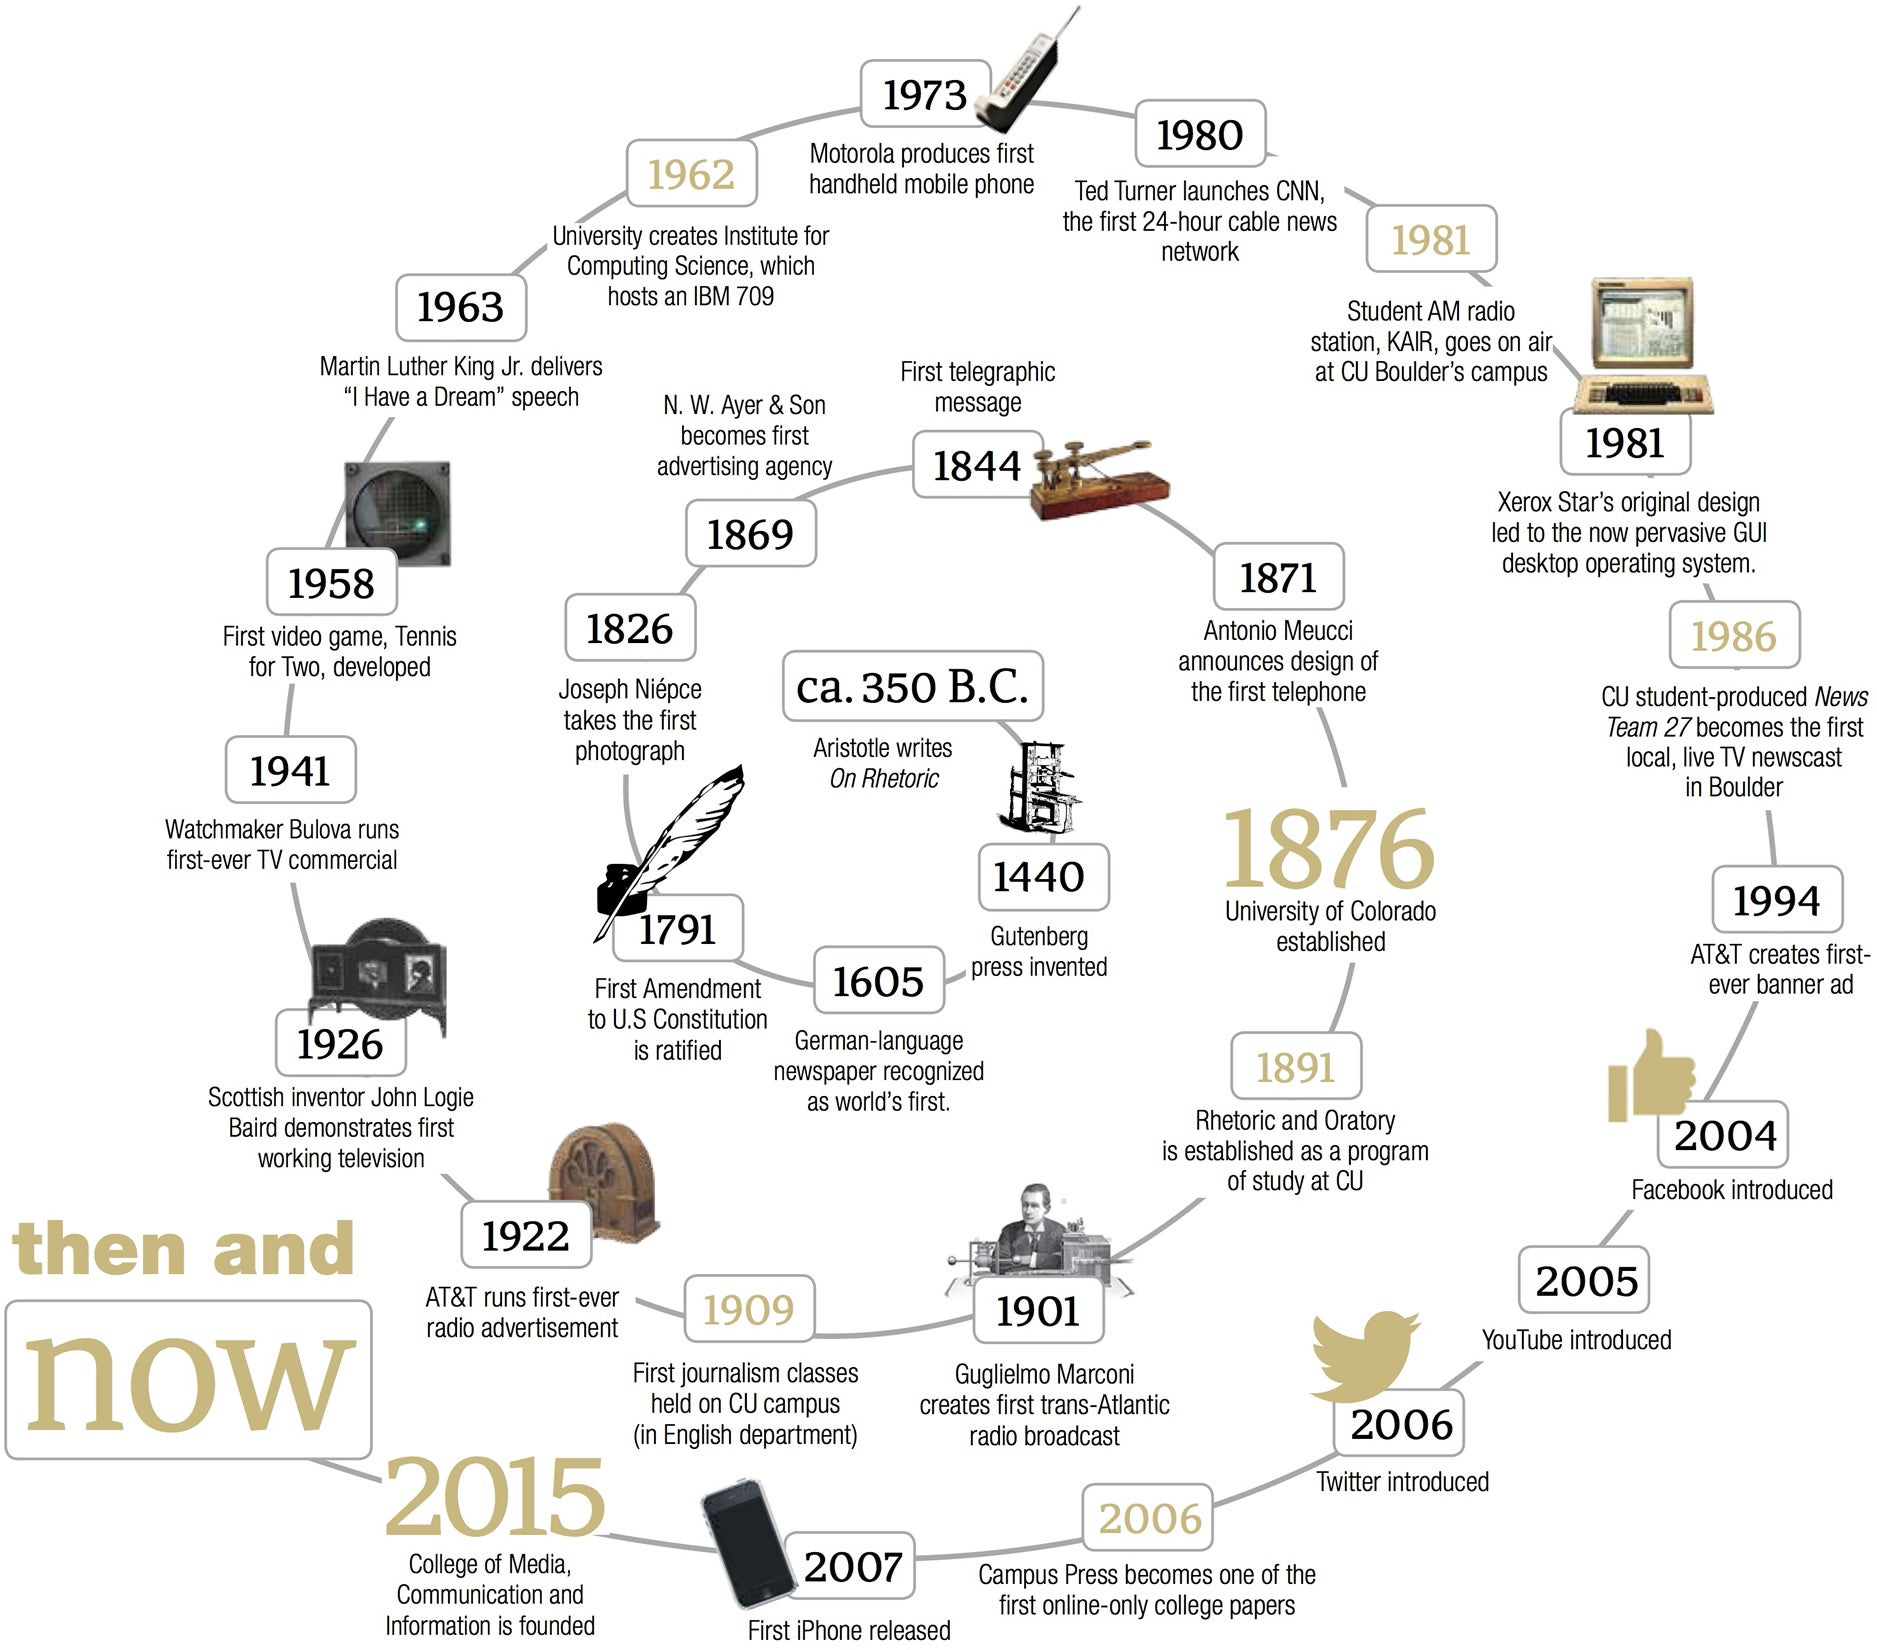 Then and Now timeline. Scroll below for accessible version.